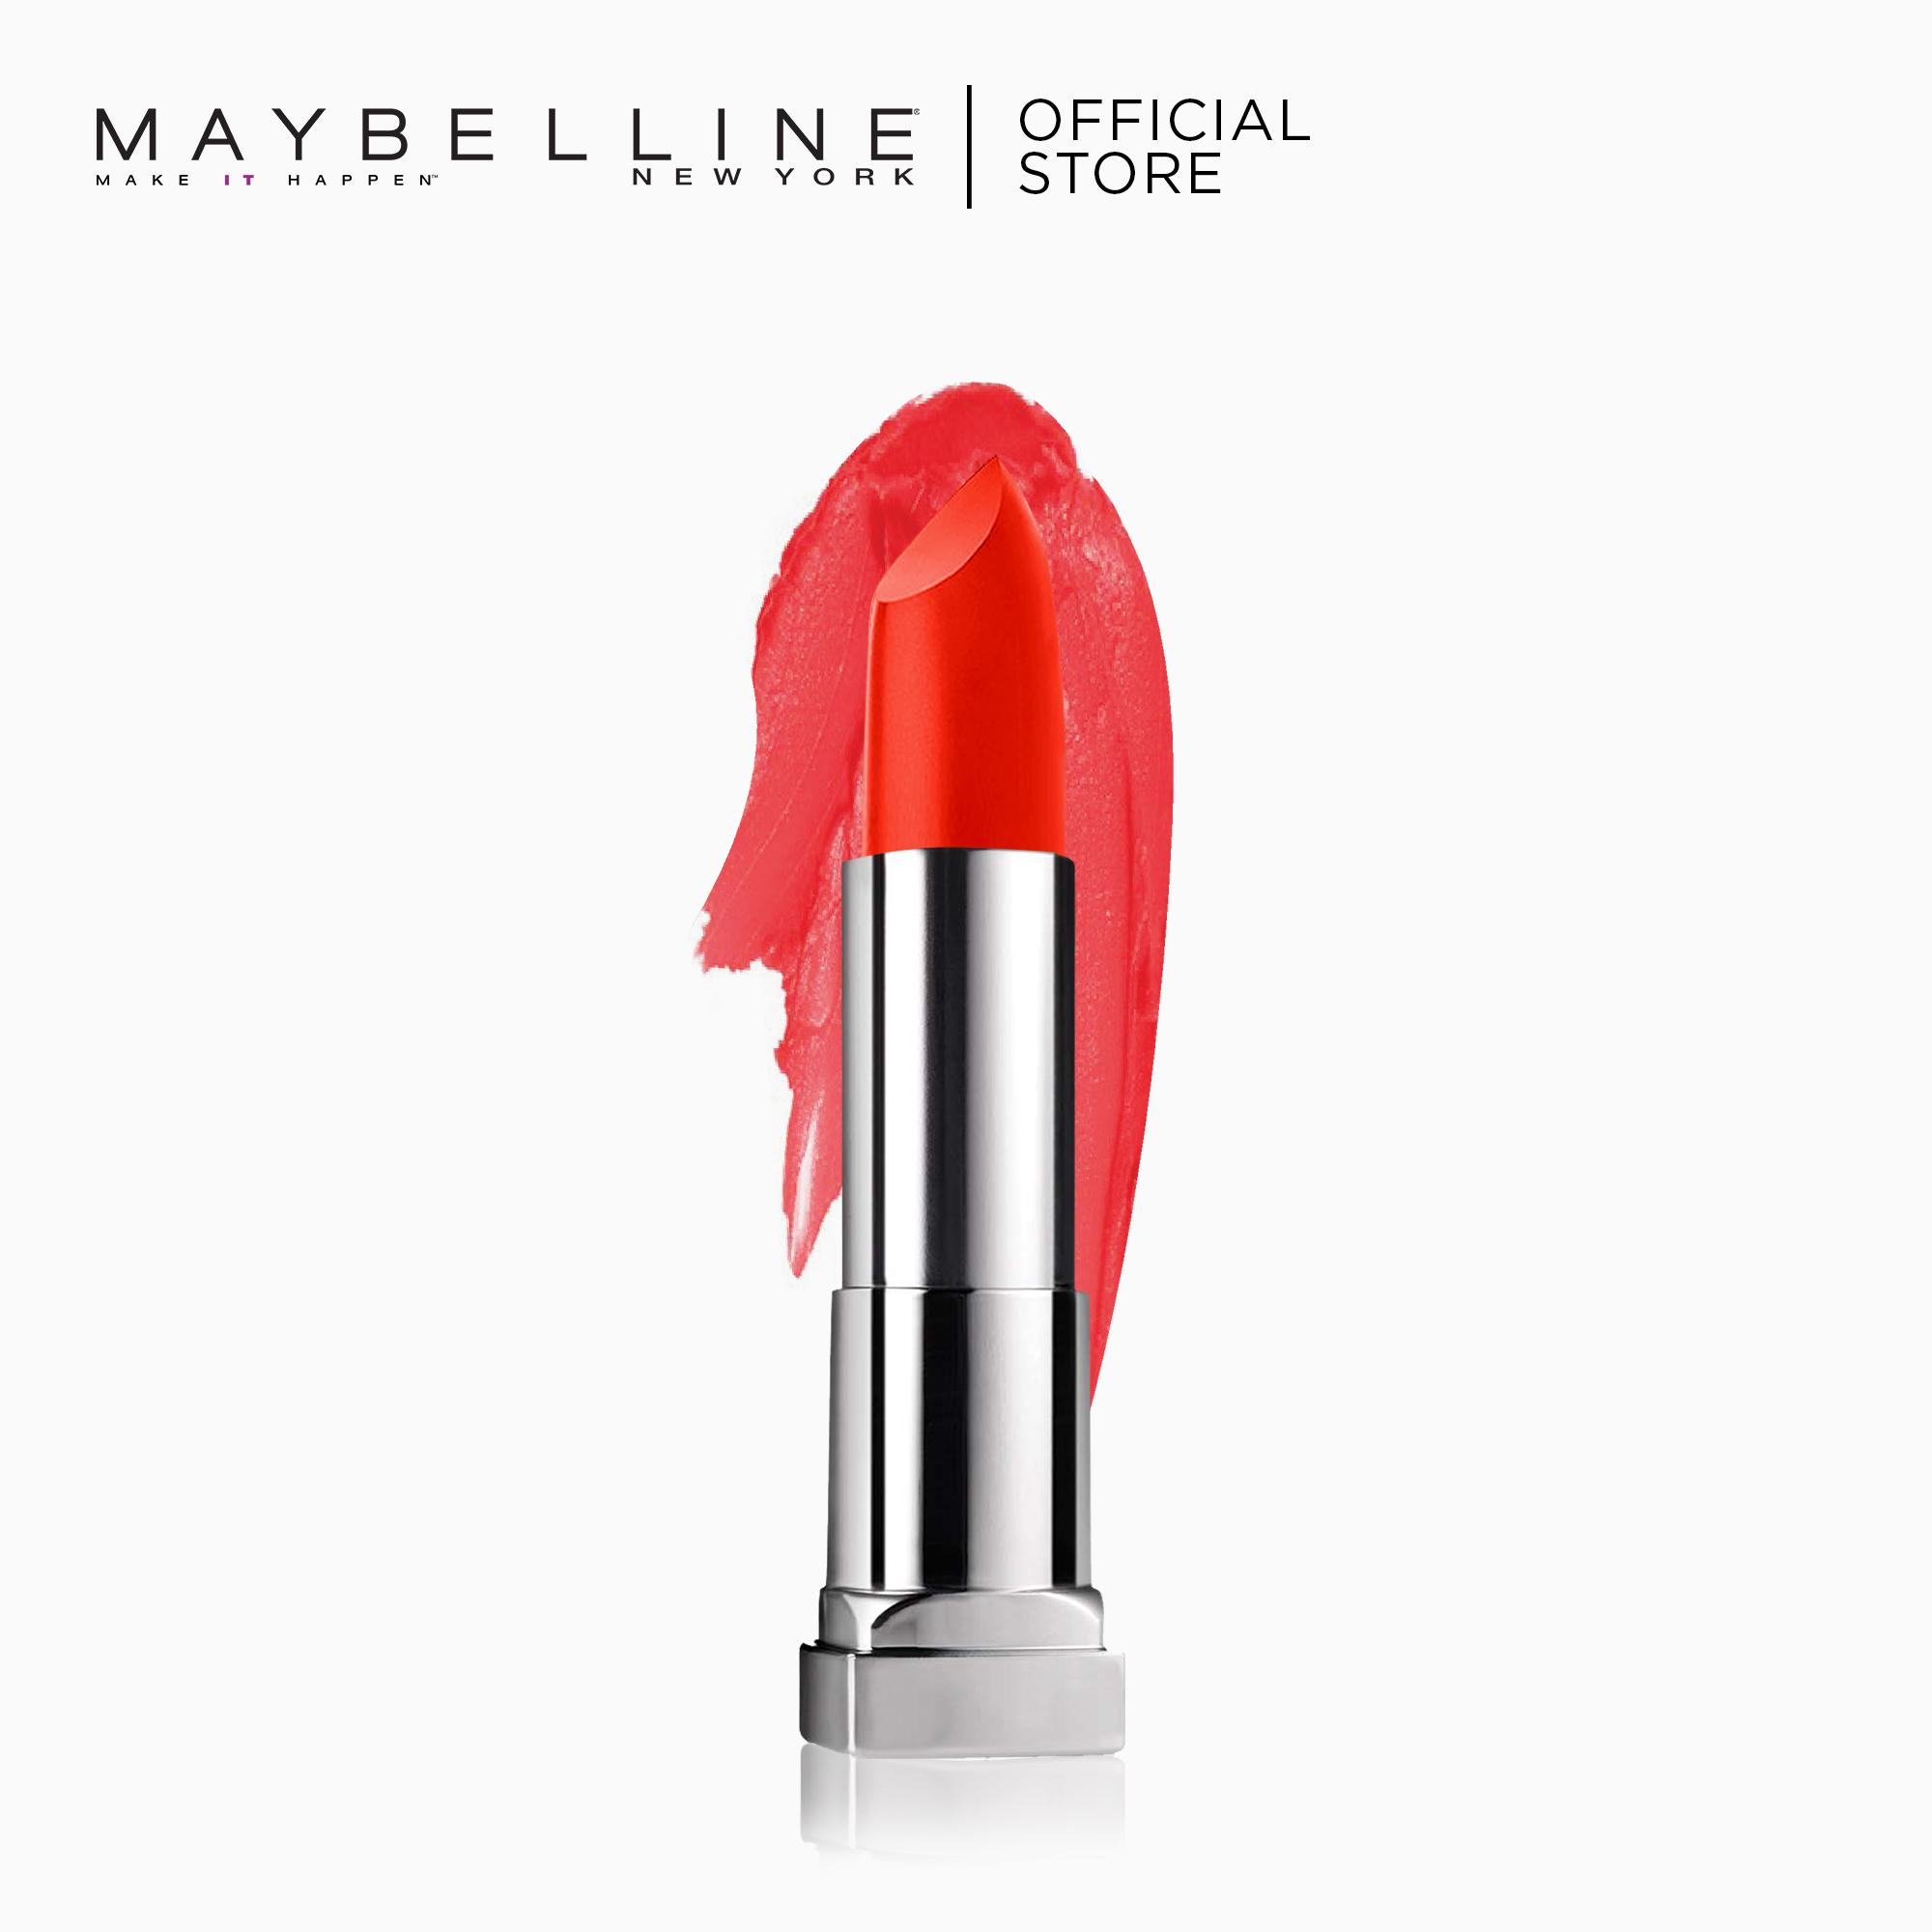 Creamy Matte Lipstick – 685 Craving Coral [New Yorks #1] by Maybelline Color Sensational Philippines